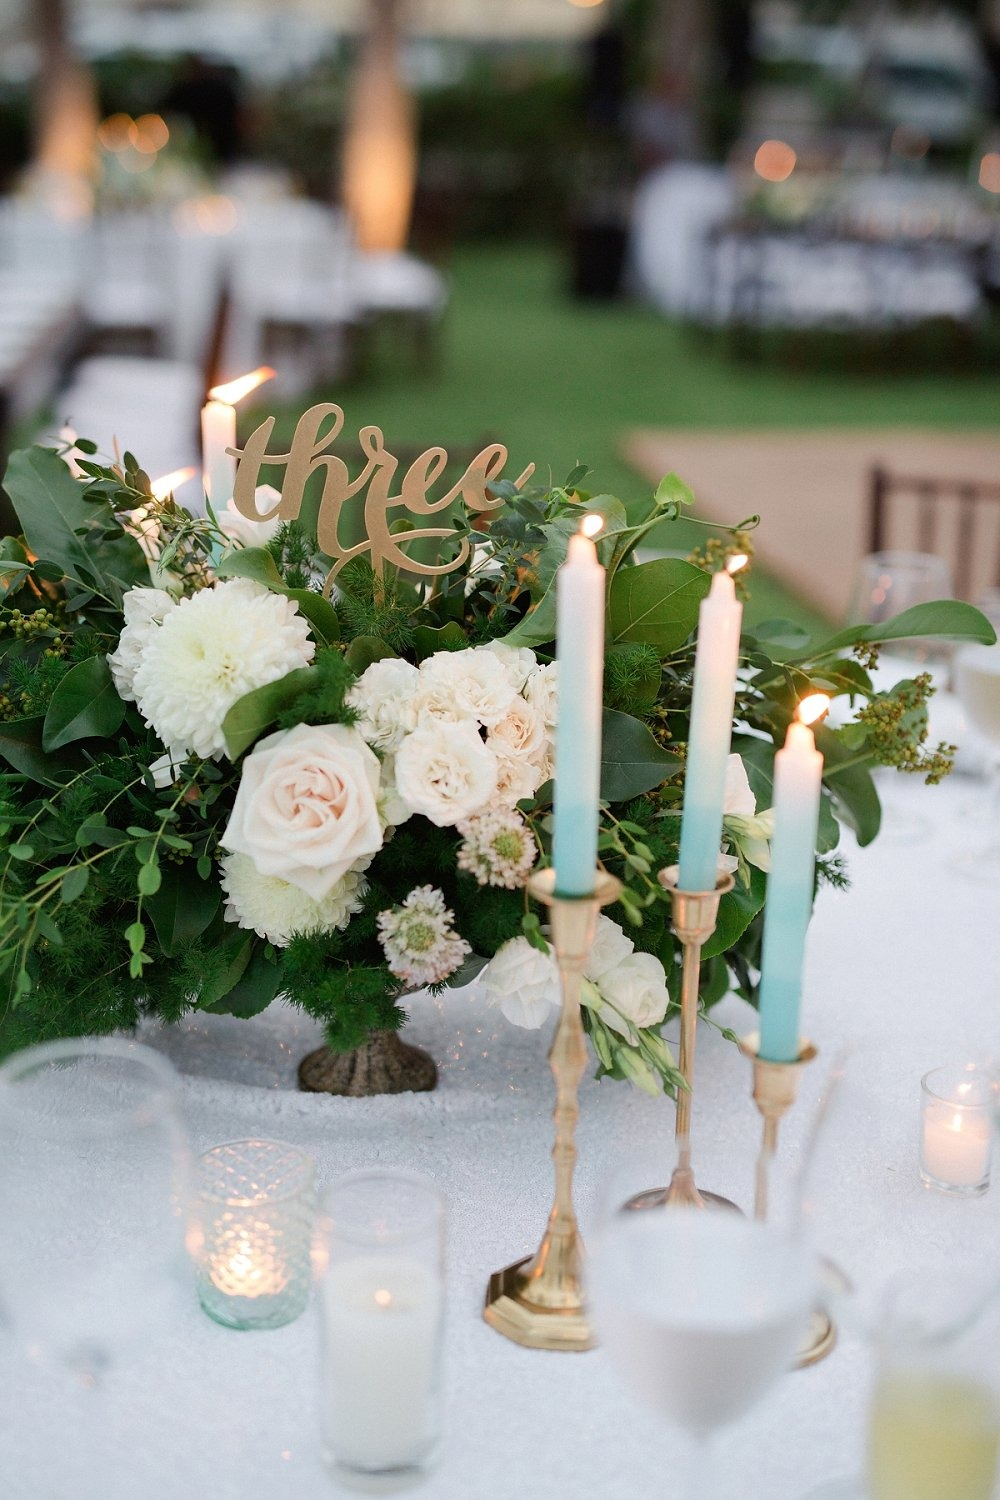 Romantic table decor with candle light